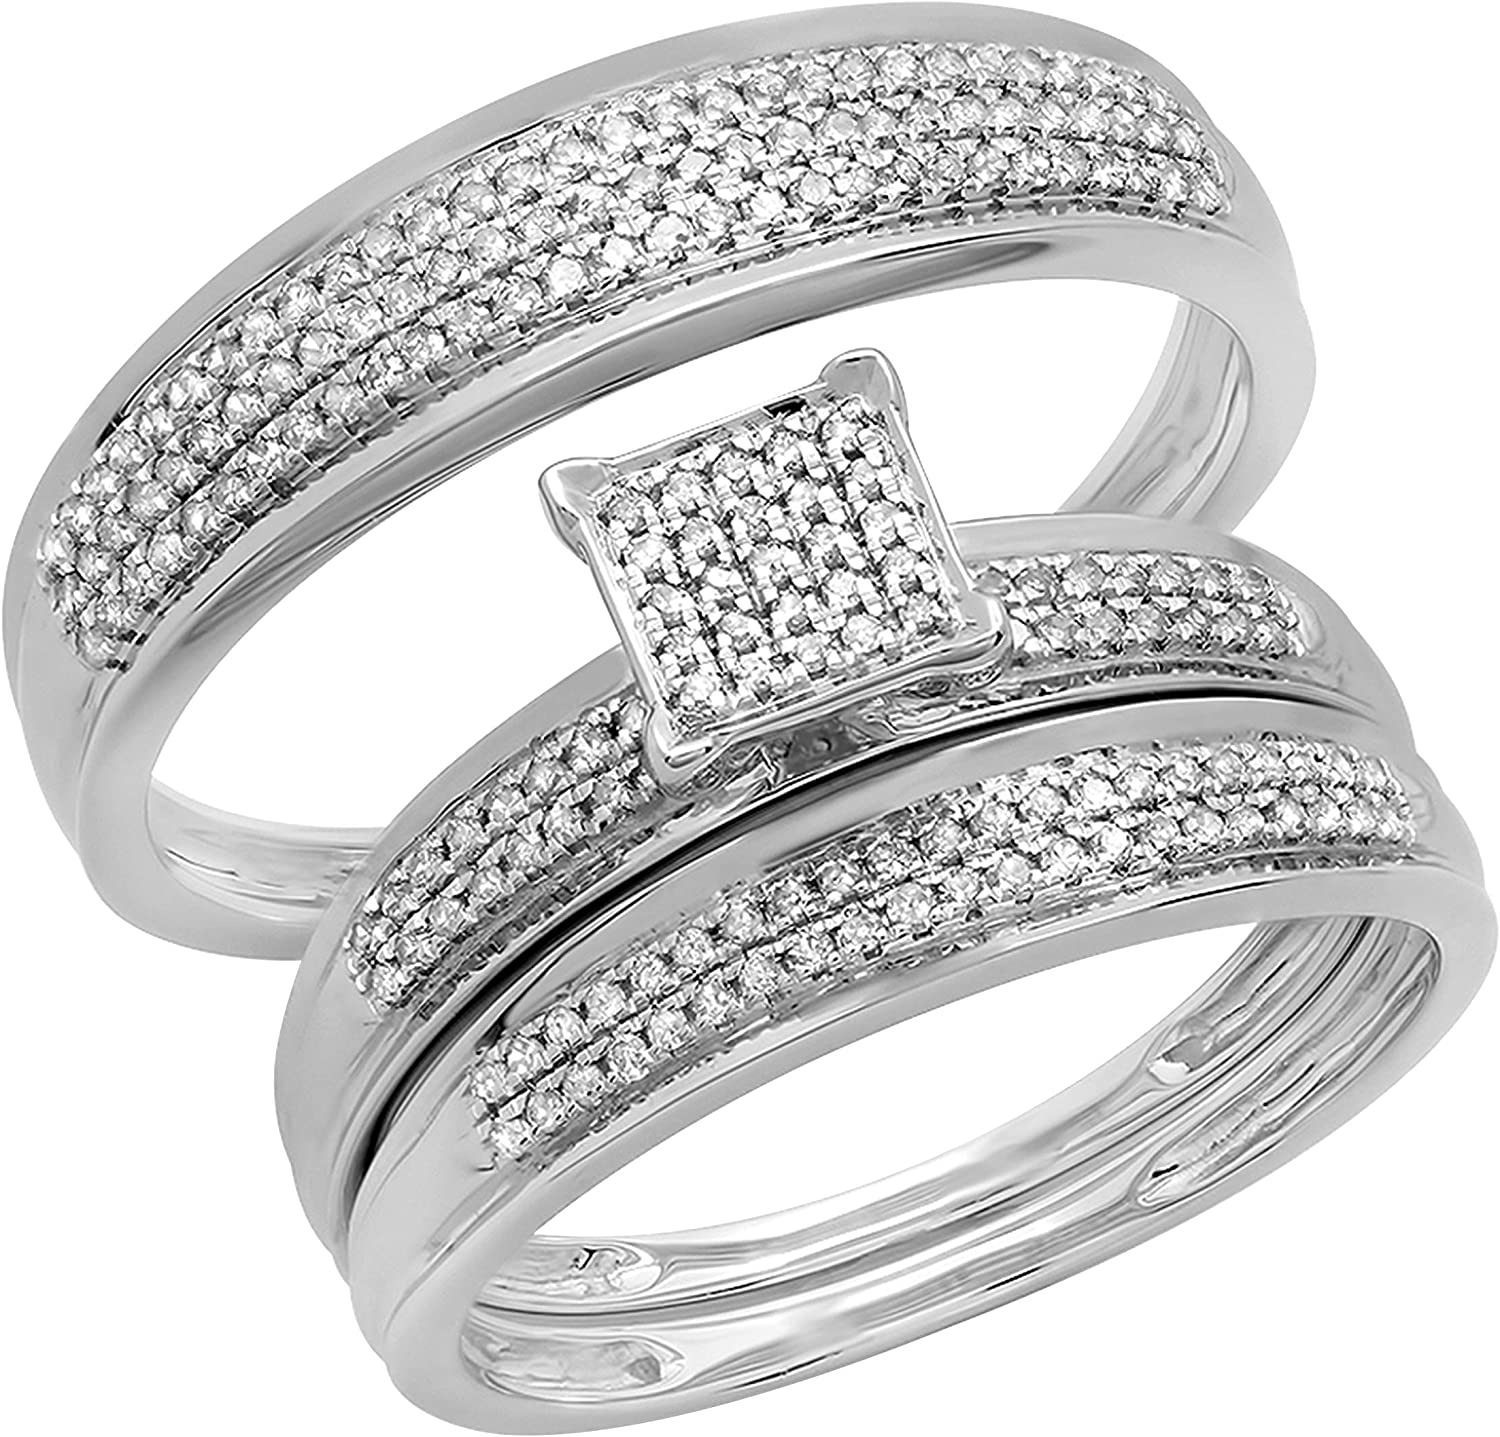 Dazzlingrock Collection 0.50 Carat (ctw) Round White Diamond Mens and Womens Trio set Ring With Wedding Anniversary Band 1/2 CT, 14K Gold